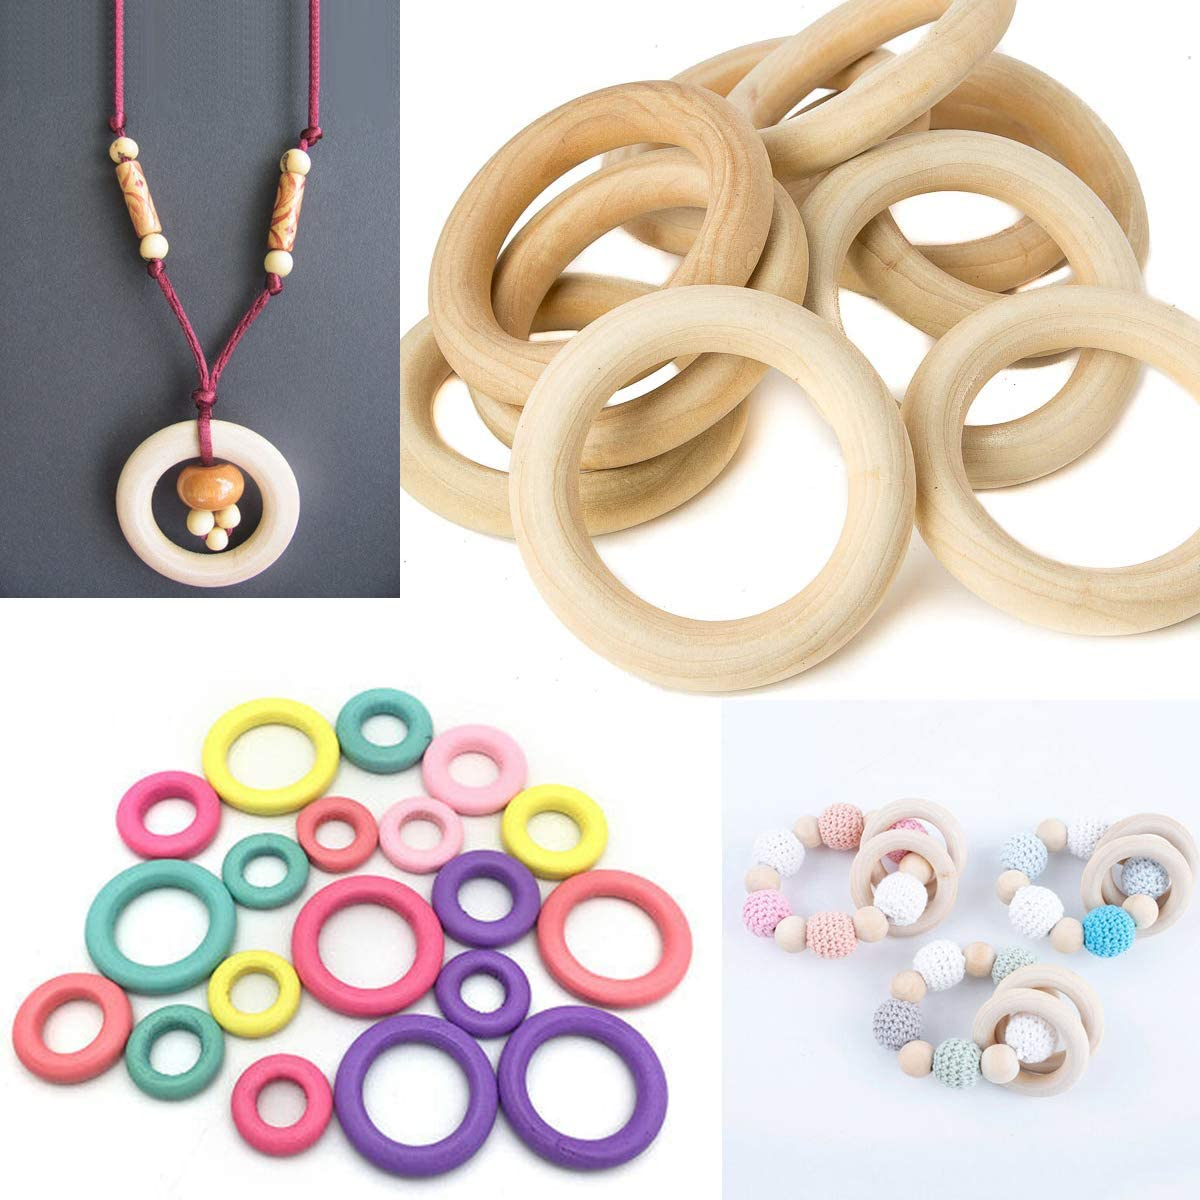 50pcs Wood Ring BetterJonny 30mm//40mm//50mm//60mm//70mm Natural Wooden Rings Smooth Wood Circles Unfinished Craft Ring for DIY Crafting